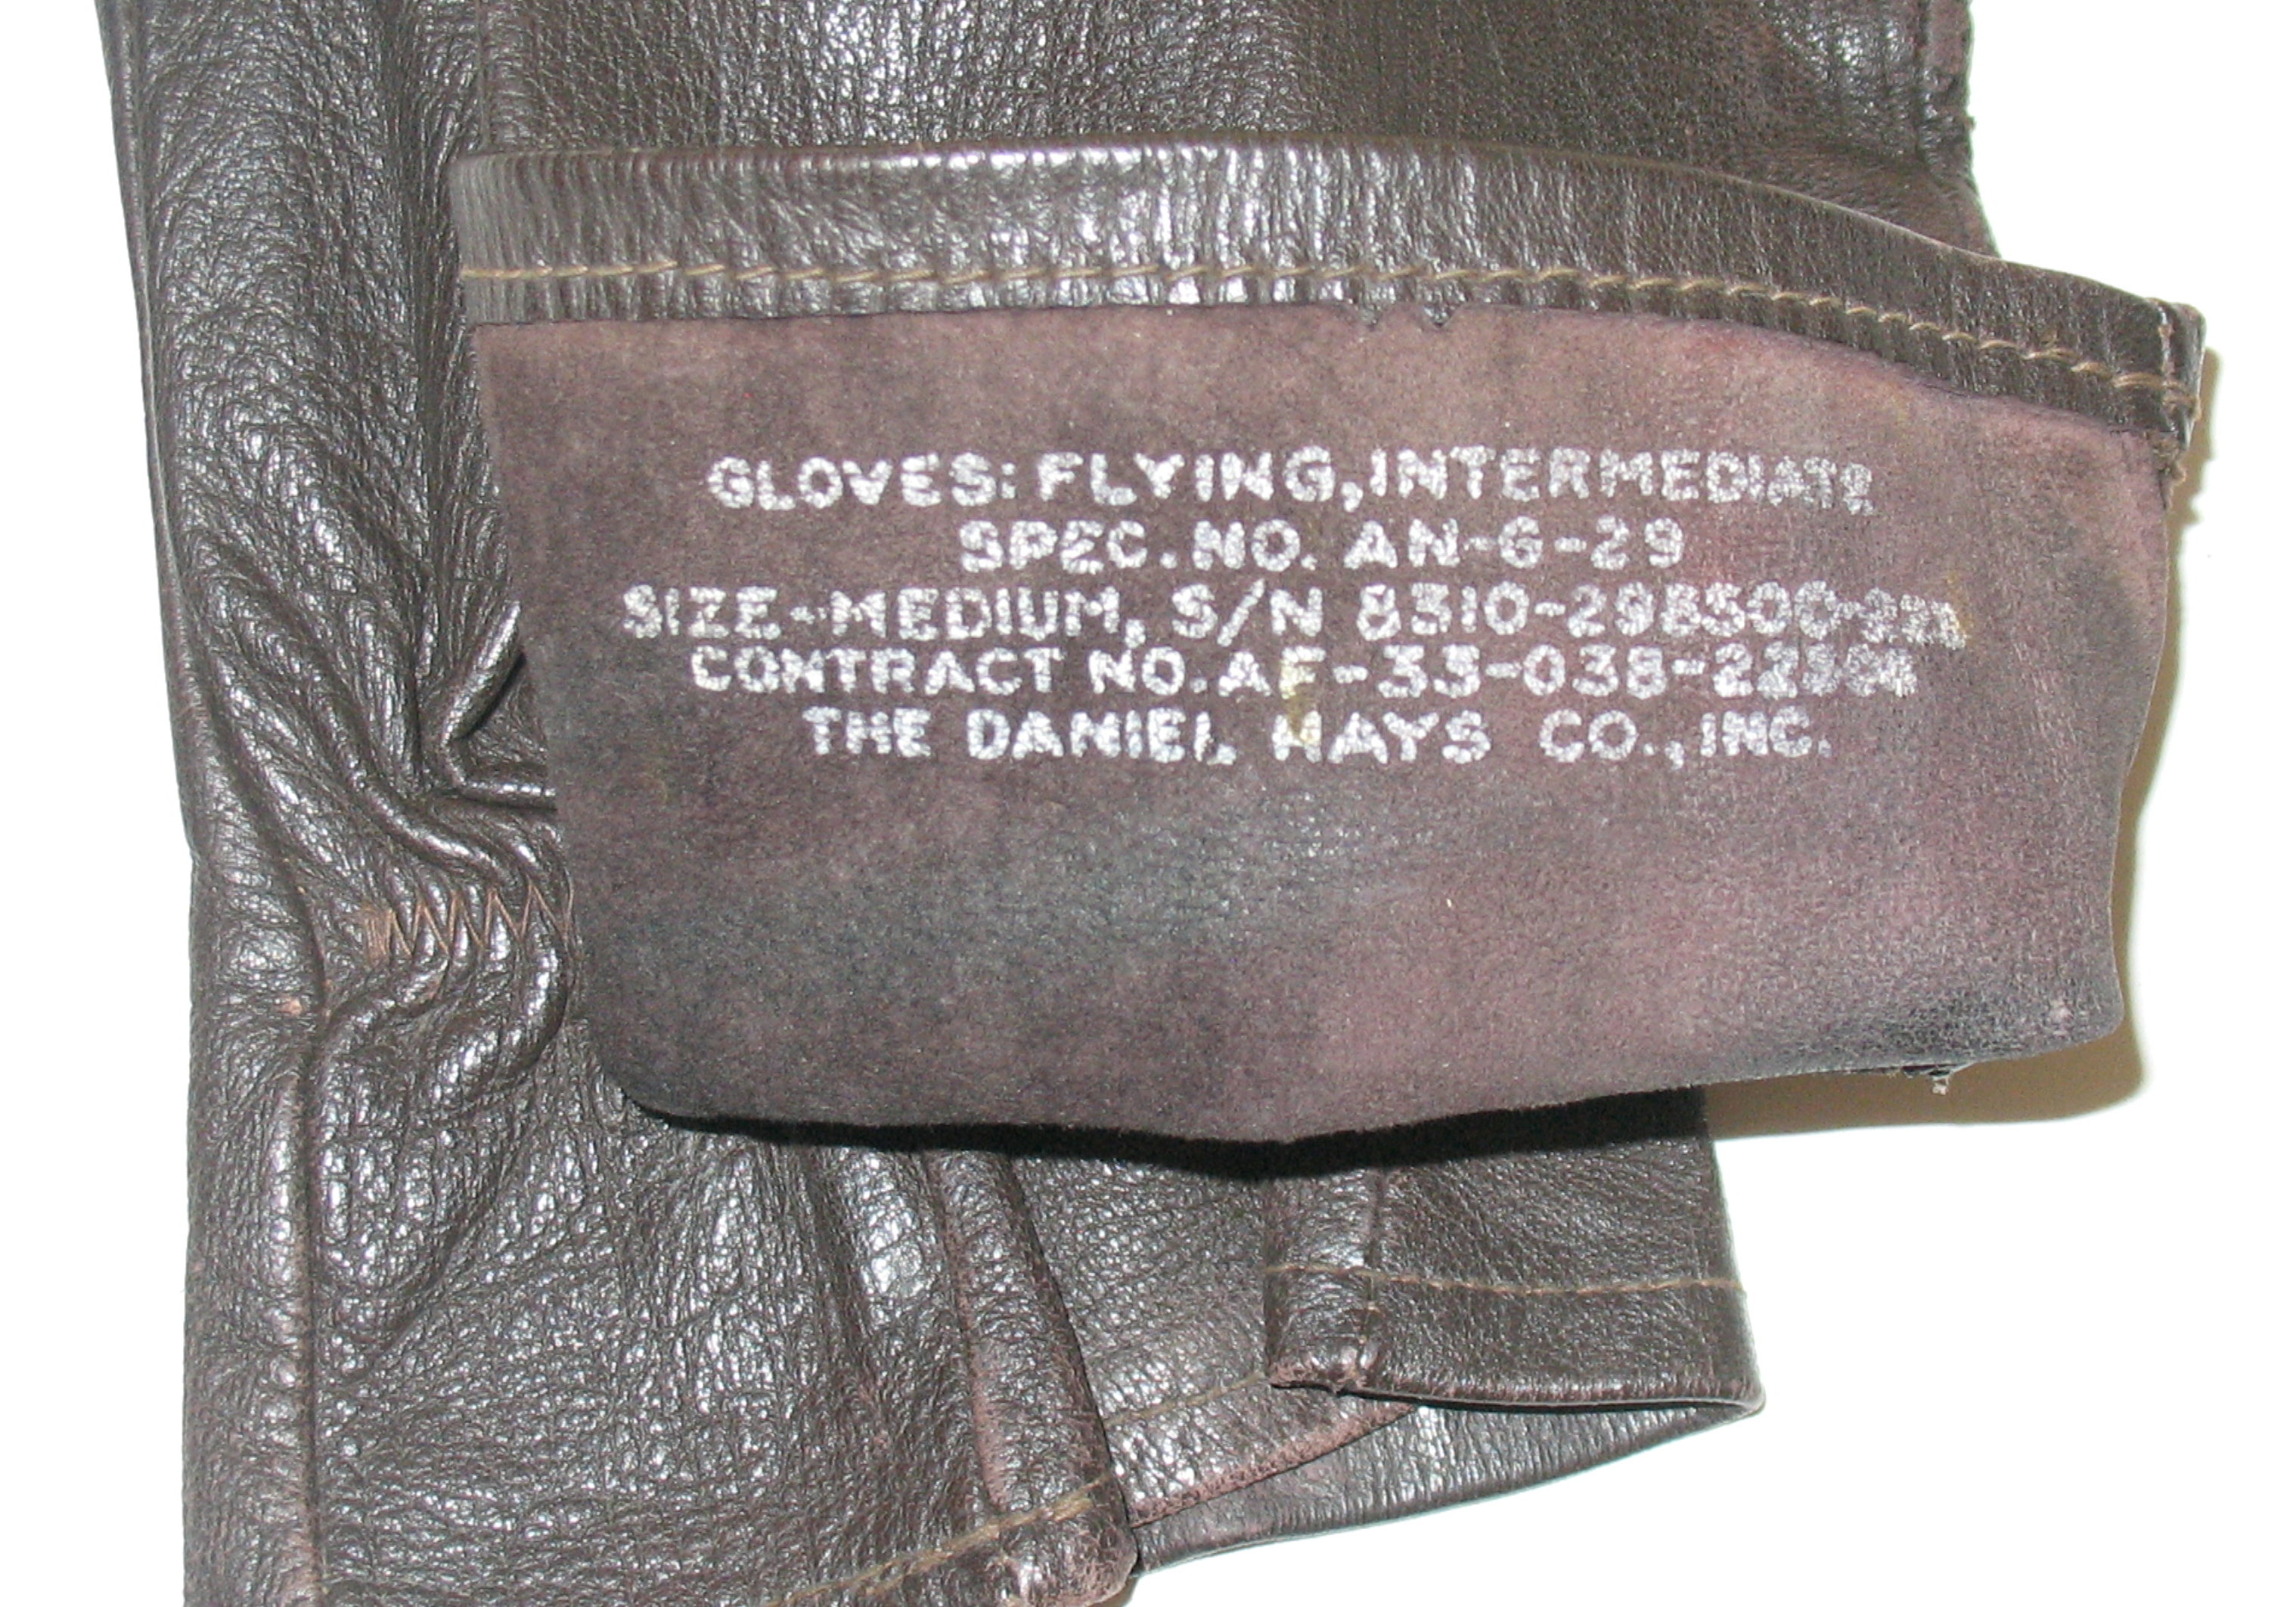 AAF USN flight gloves AN-G-29/A-11A